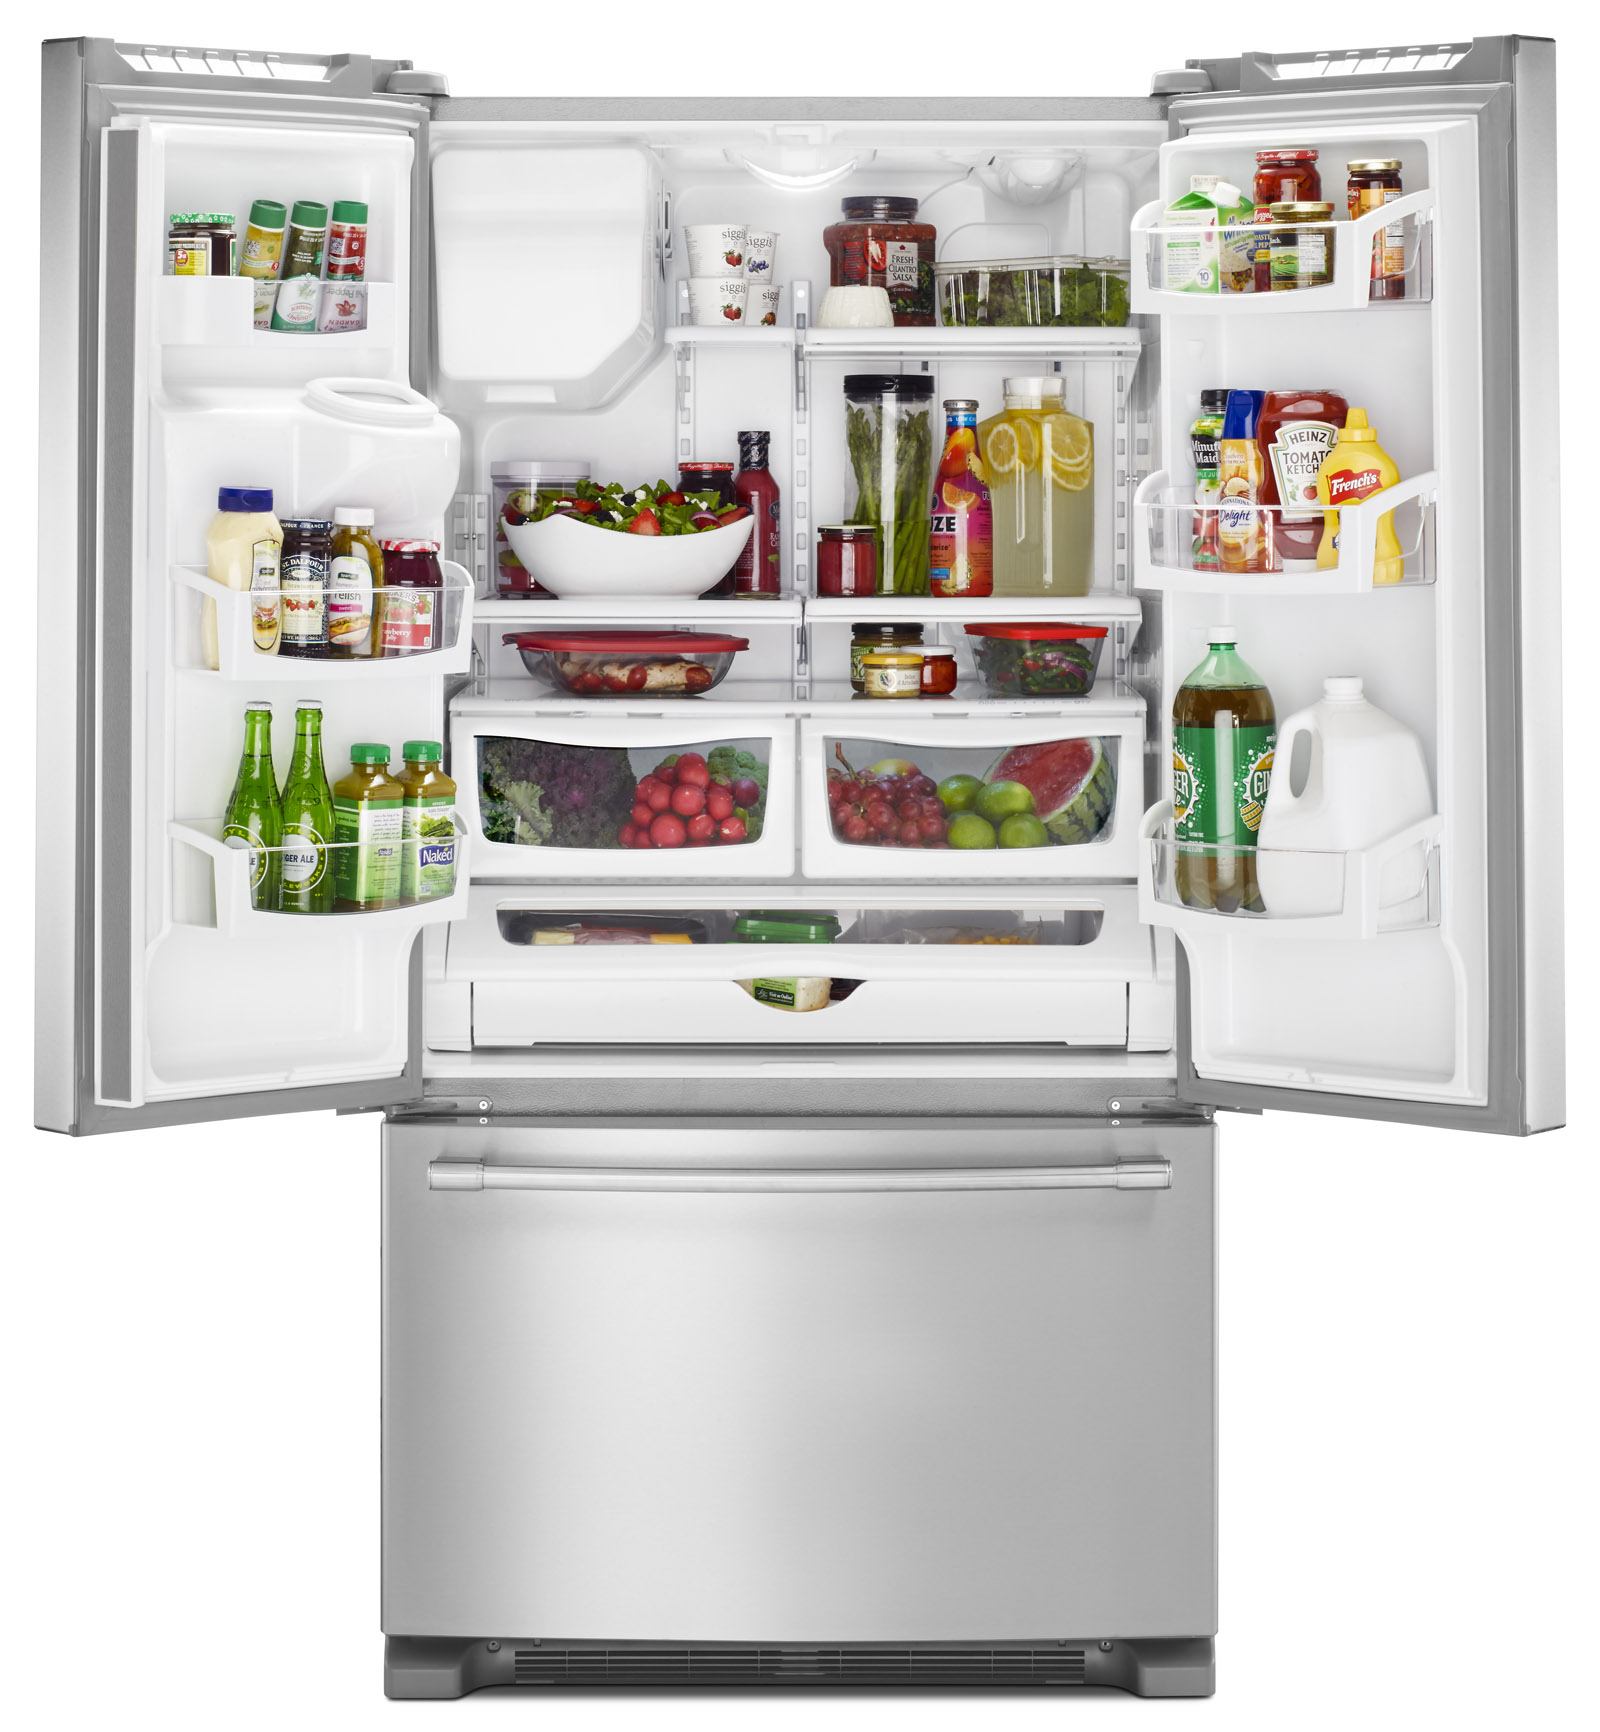 """Maytag MFI2570FEZ 25 cu. ft. 36"""" Wide French Door Refrigerator w/ PowerCold® - Stainless Steel"""